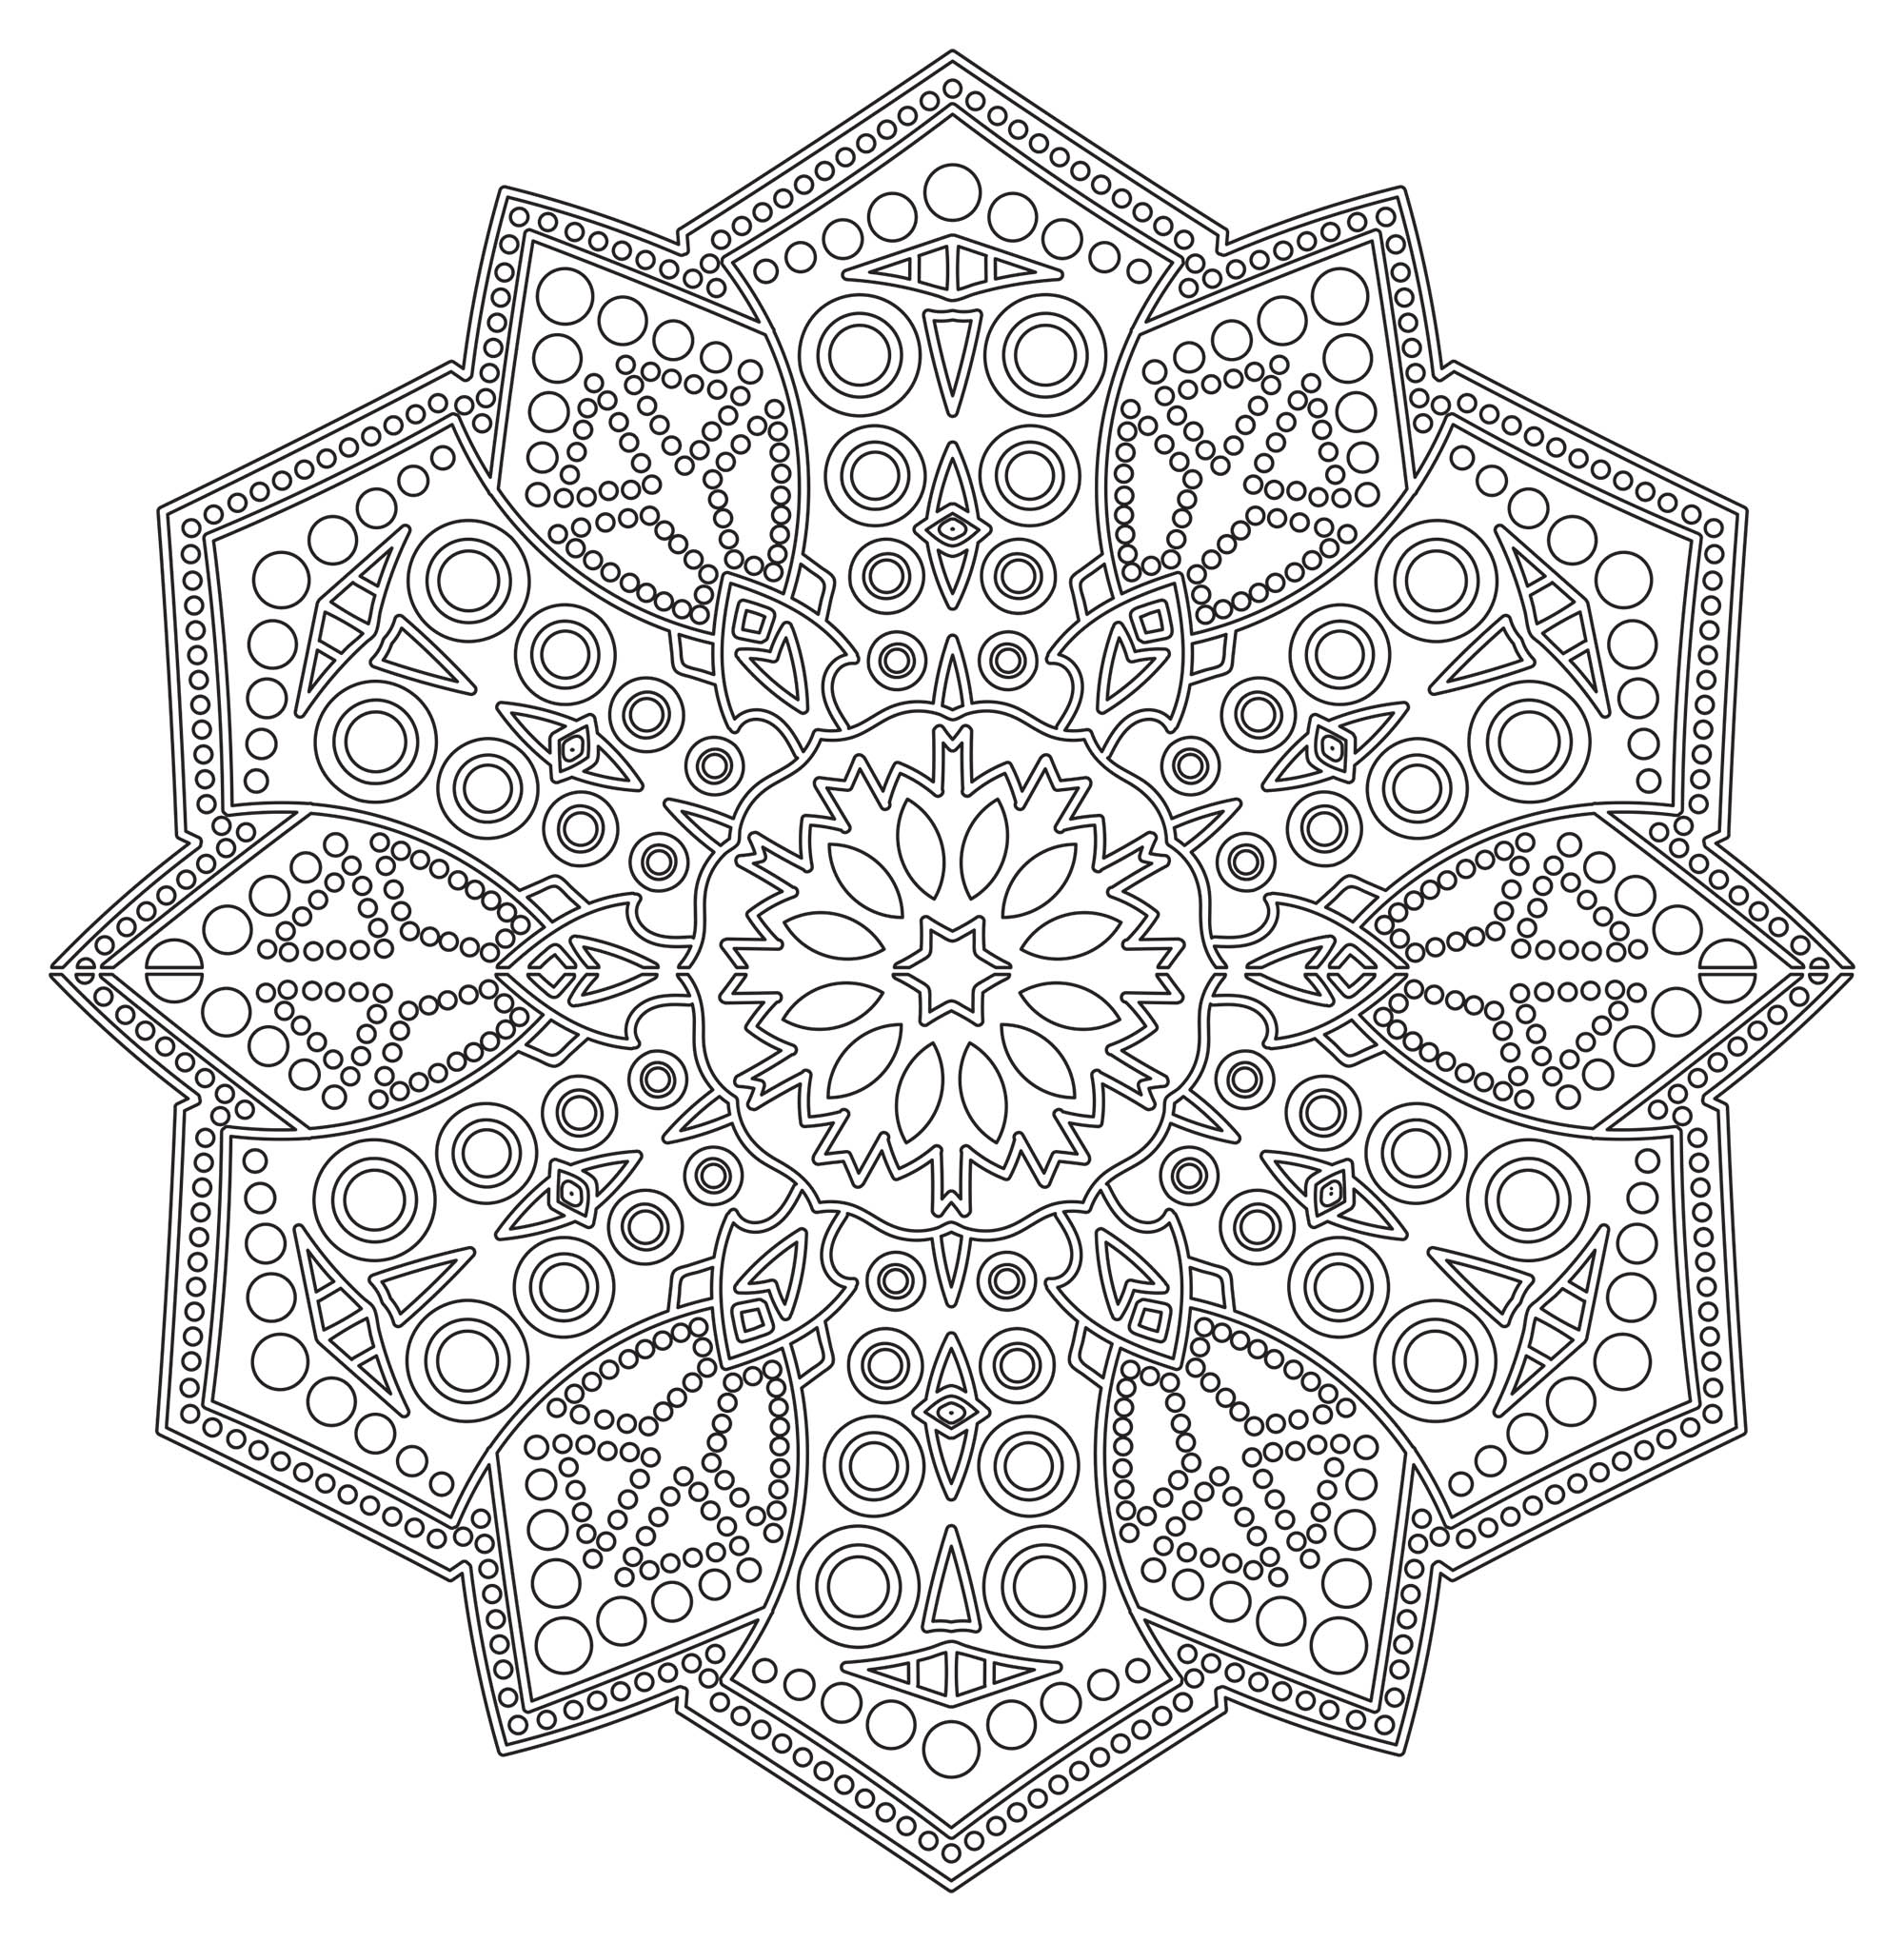 Incredible Mandalas coloring page to print and color for free